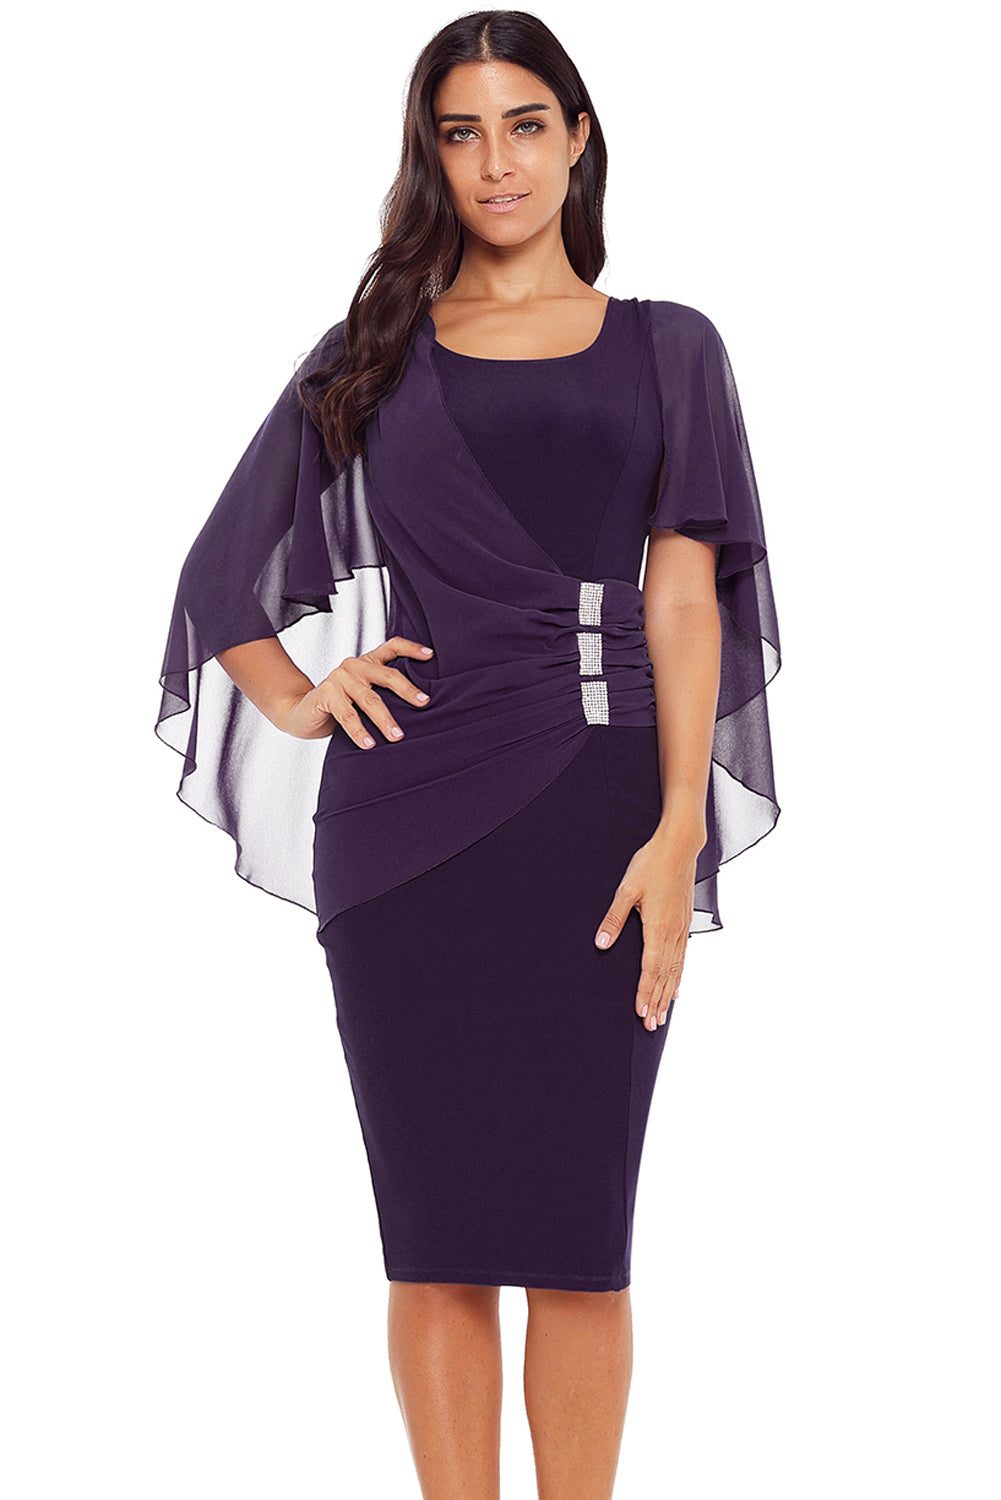 Purple Waist Pleats Rhinestone Detail Midi Dress